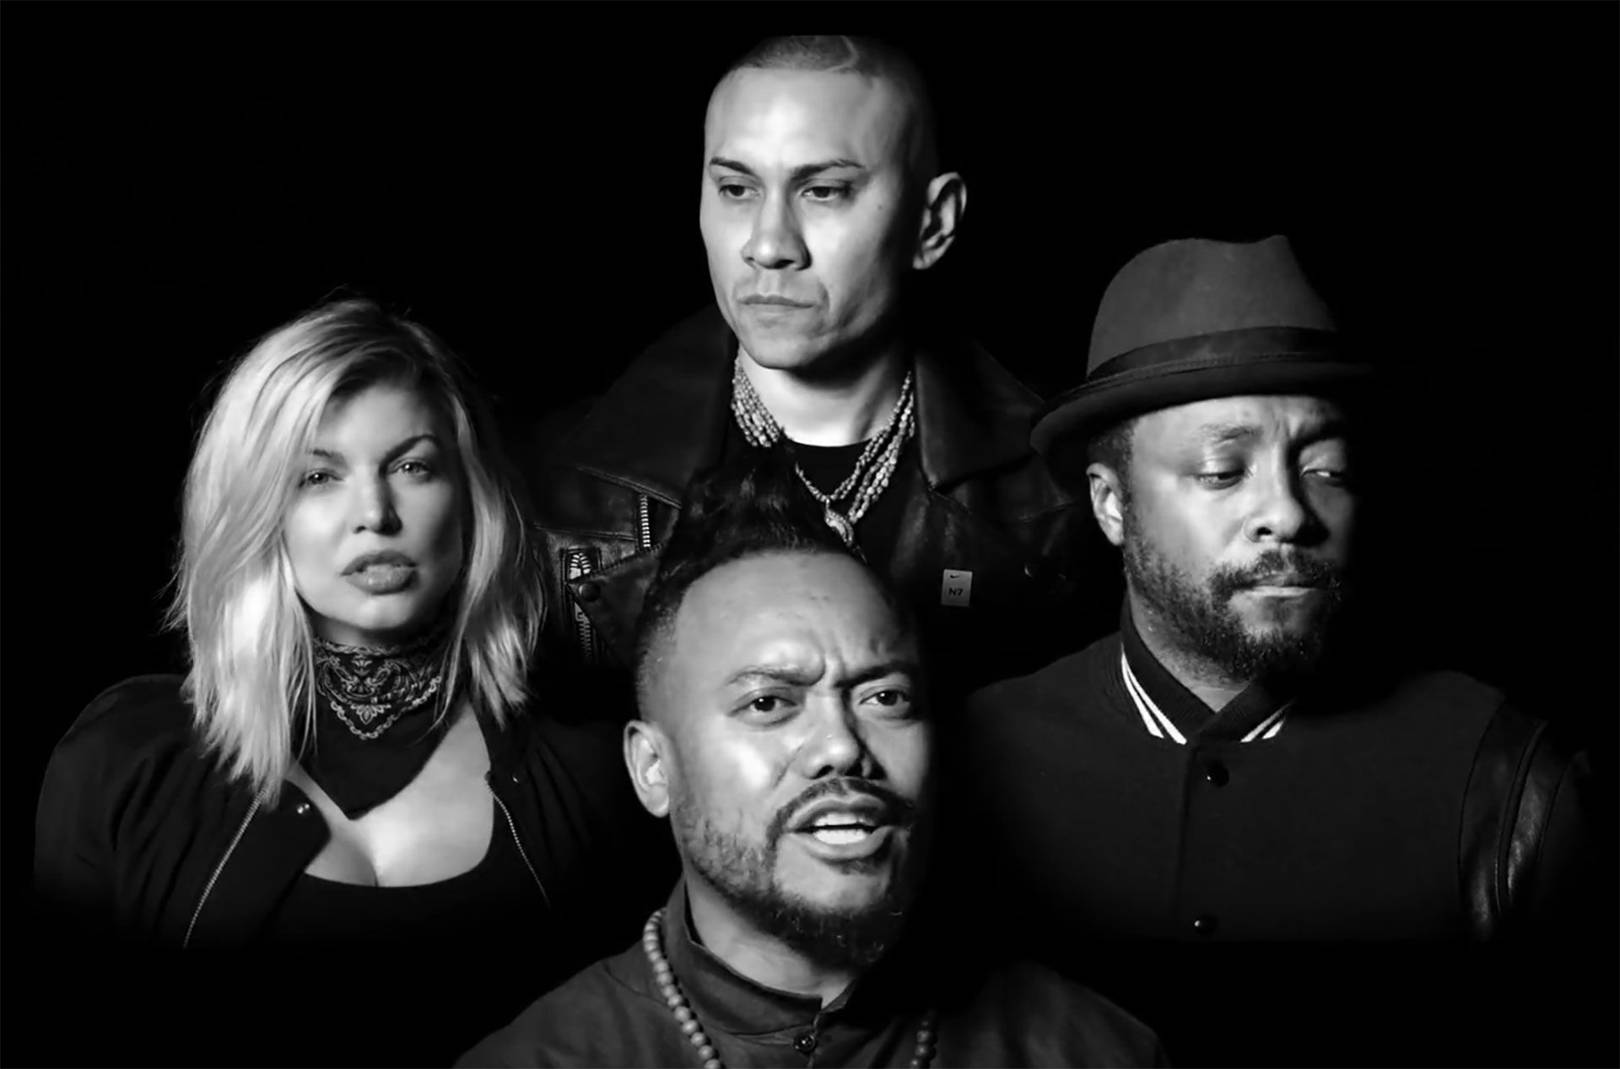 Песня The Black Eyed Peas - #WHERESTHELOVE